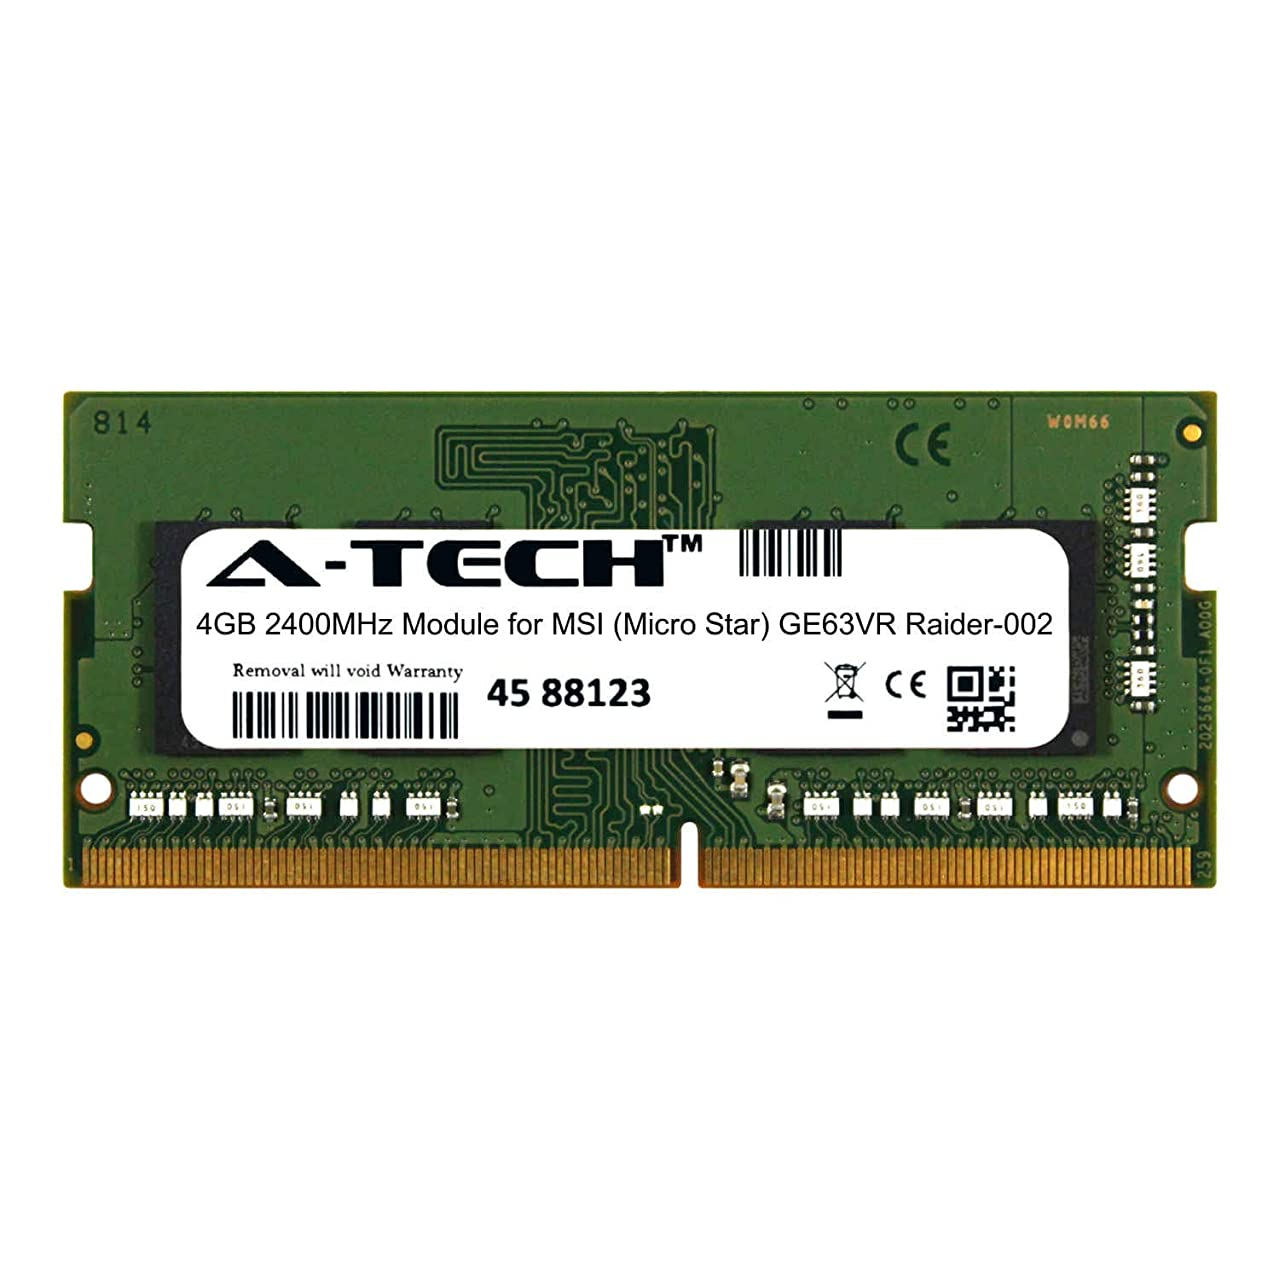 A-Tech 4GB Module for MSI (Micro Star) GE63VR Raider-002 Laptop & Notebook Compatible DDR4 2400Mhz Memory Ram (ATMS368250A25824X1)